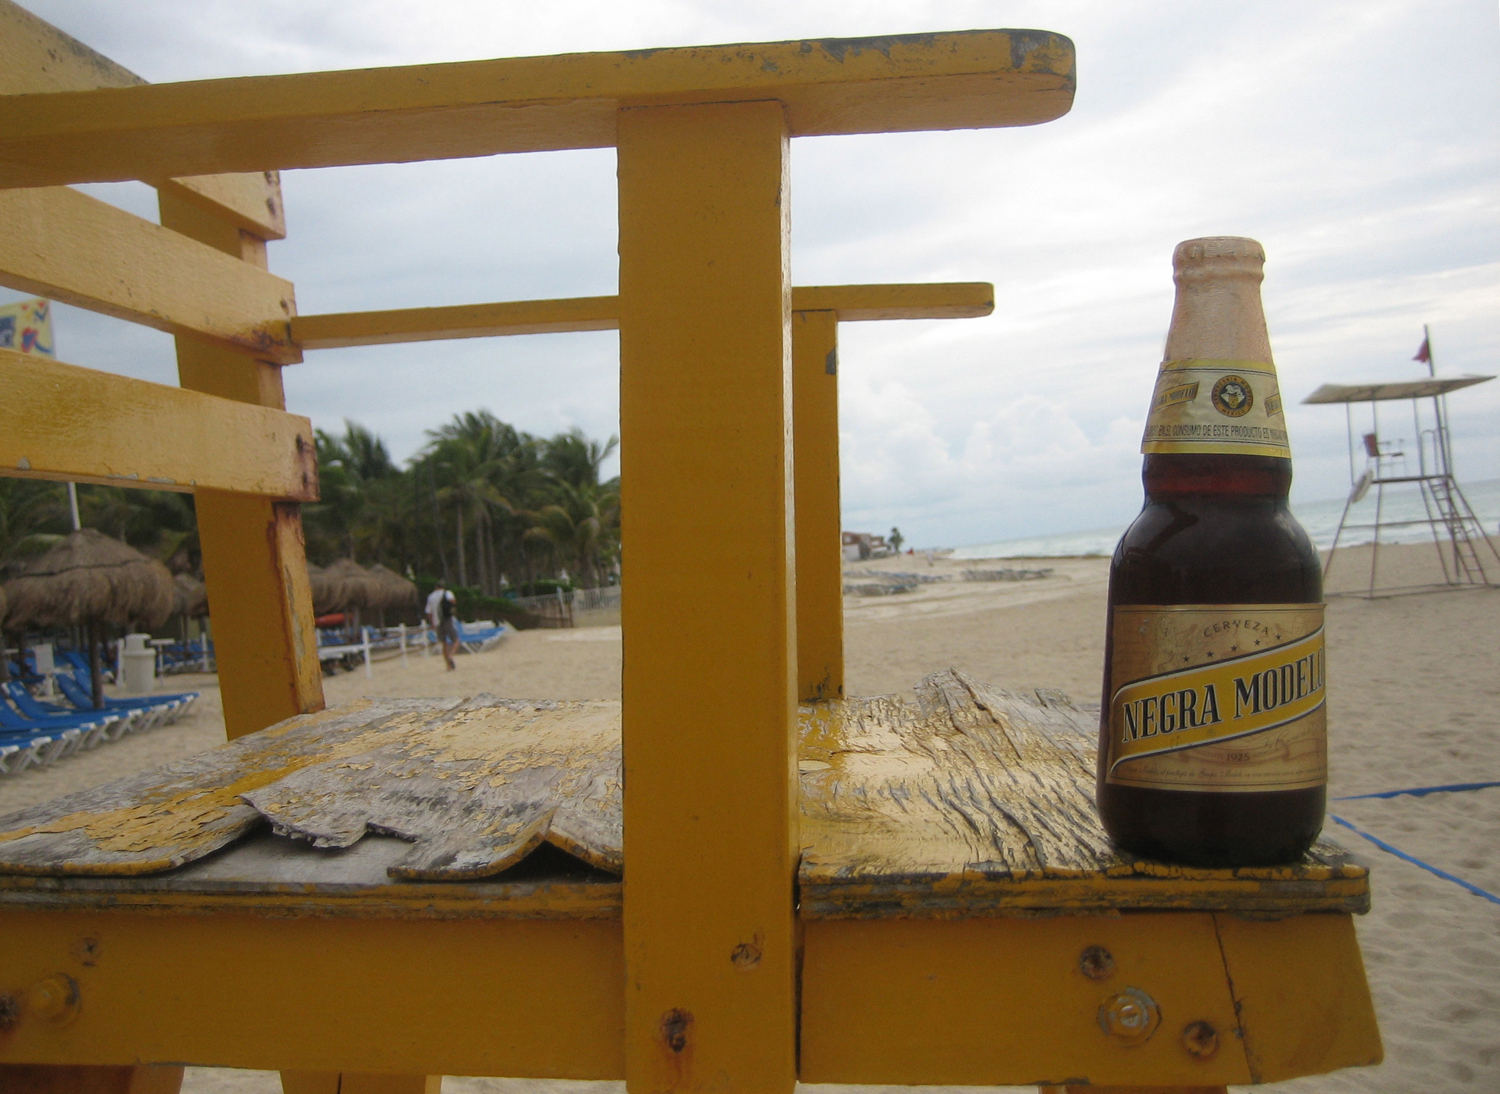 Enjoy Negra Modelo on the beach, with other Mexican beer.